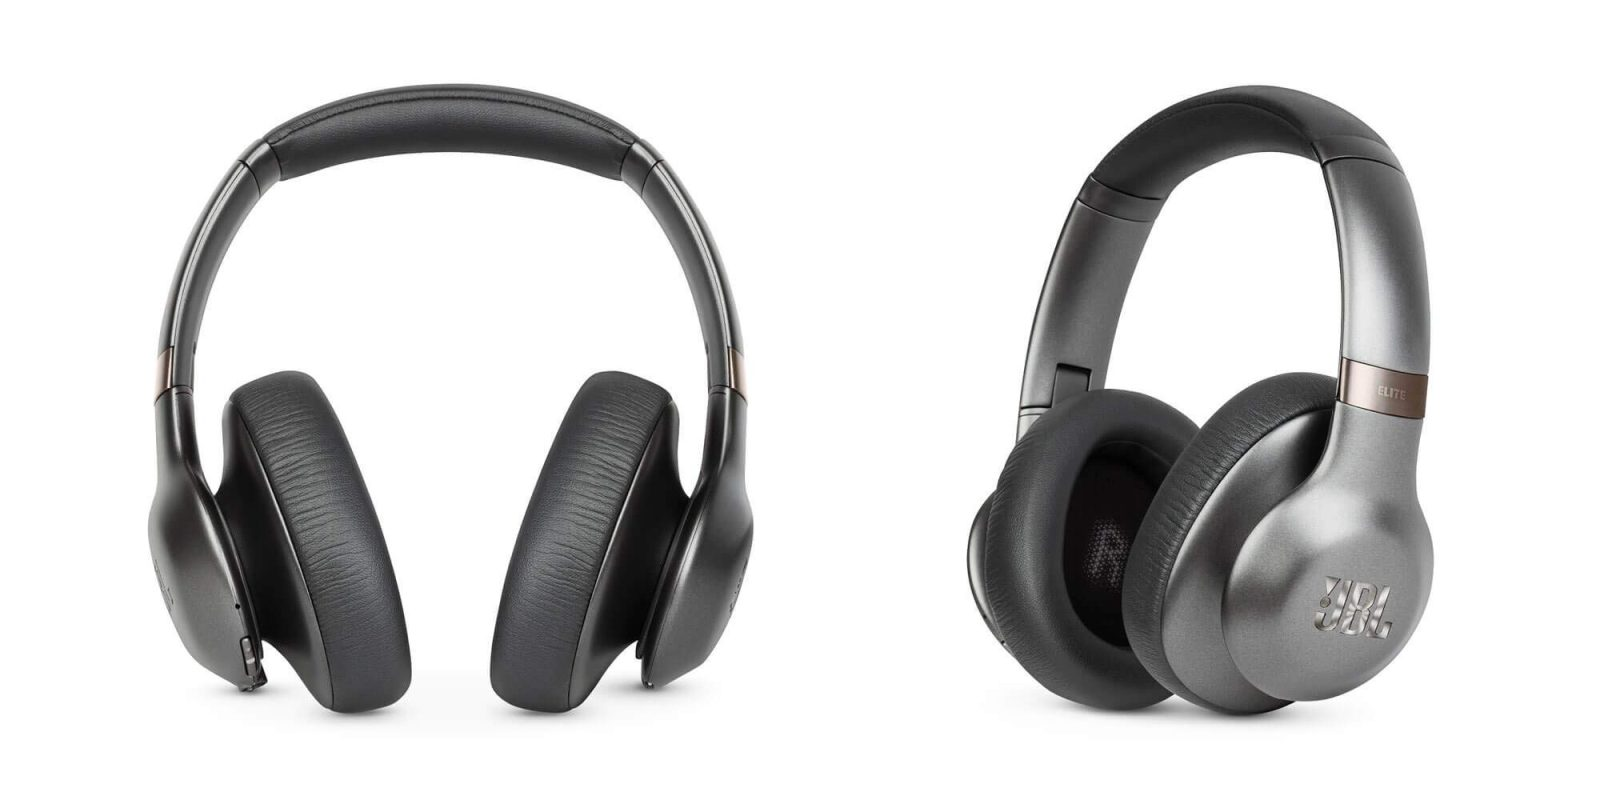 JBL's refurb Everest NC Bluetooth Headphones are now $220 off the going rate